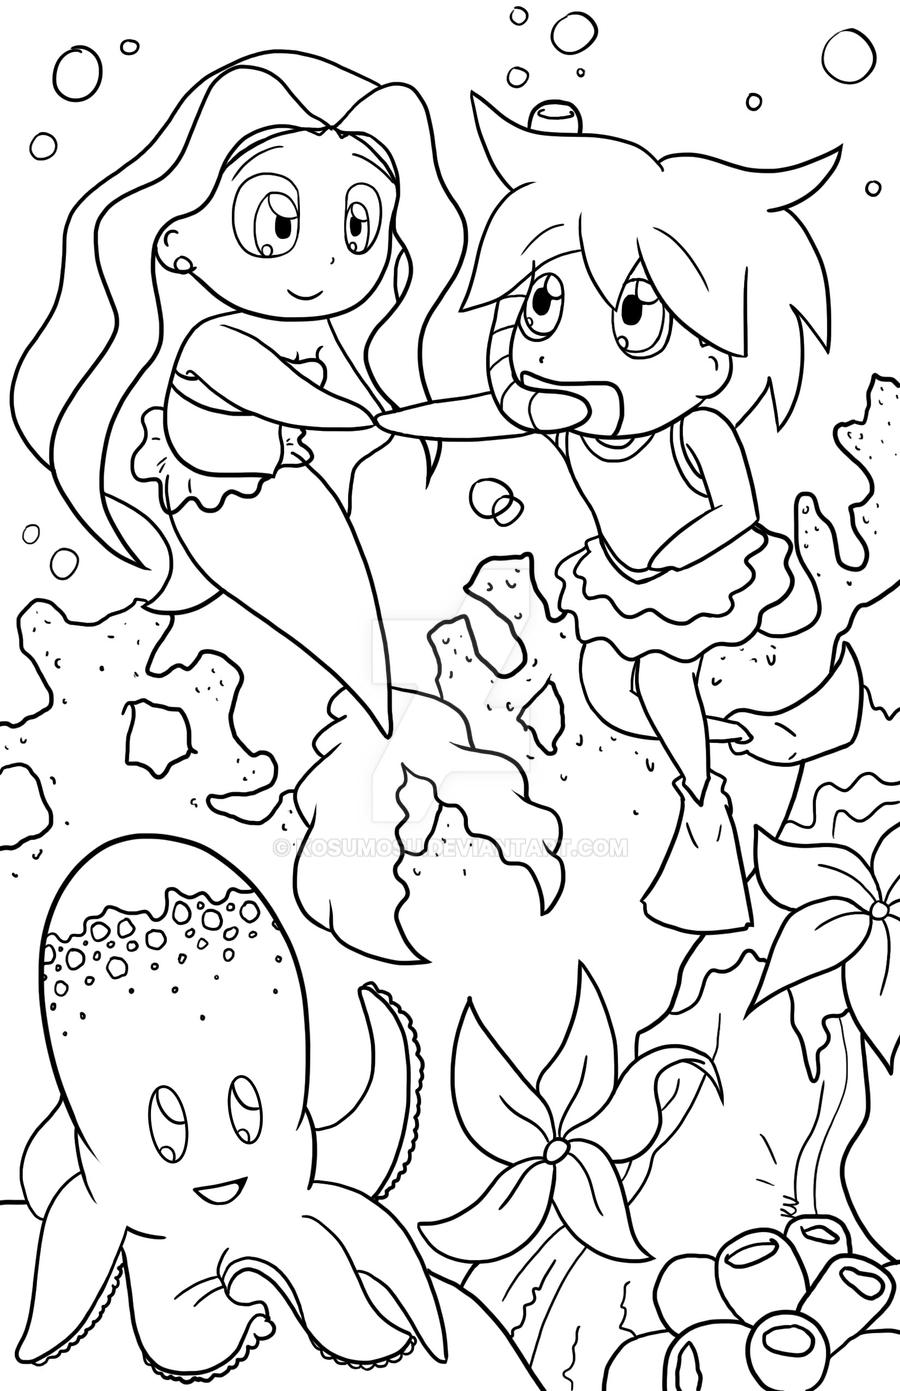 coloring pages of random stuff - photo#1